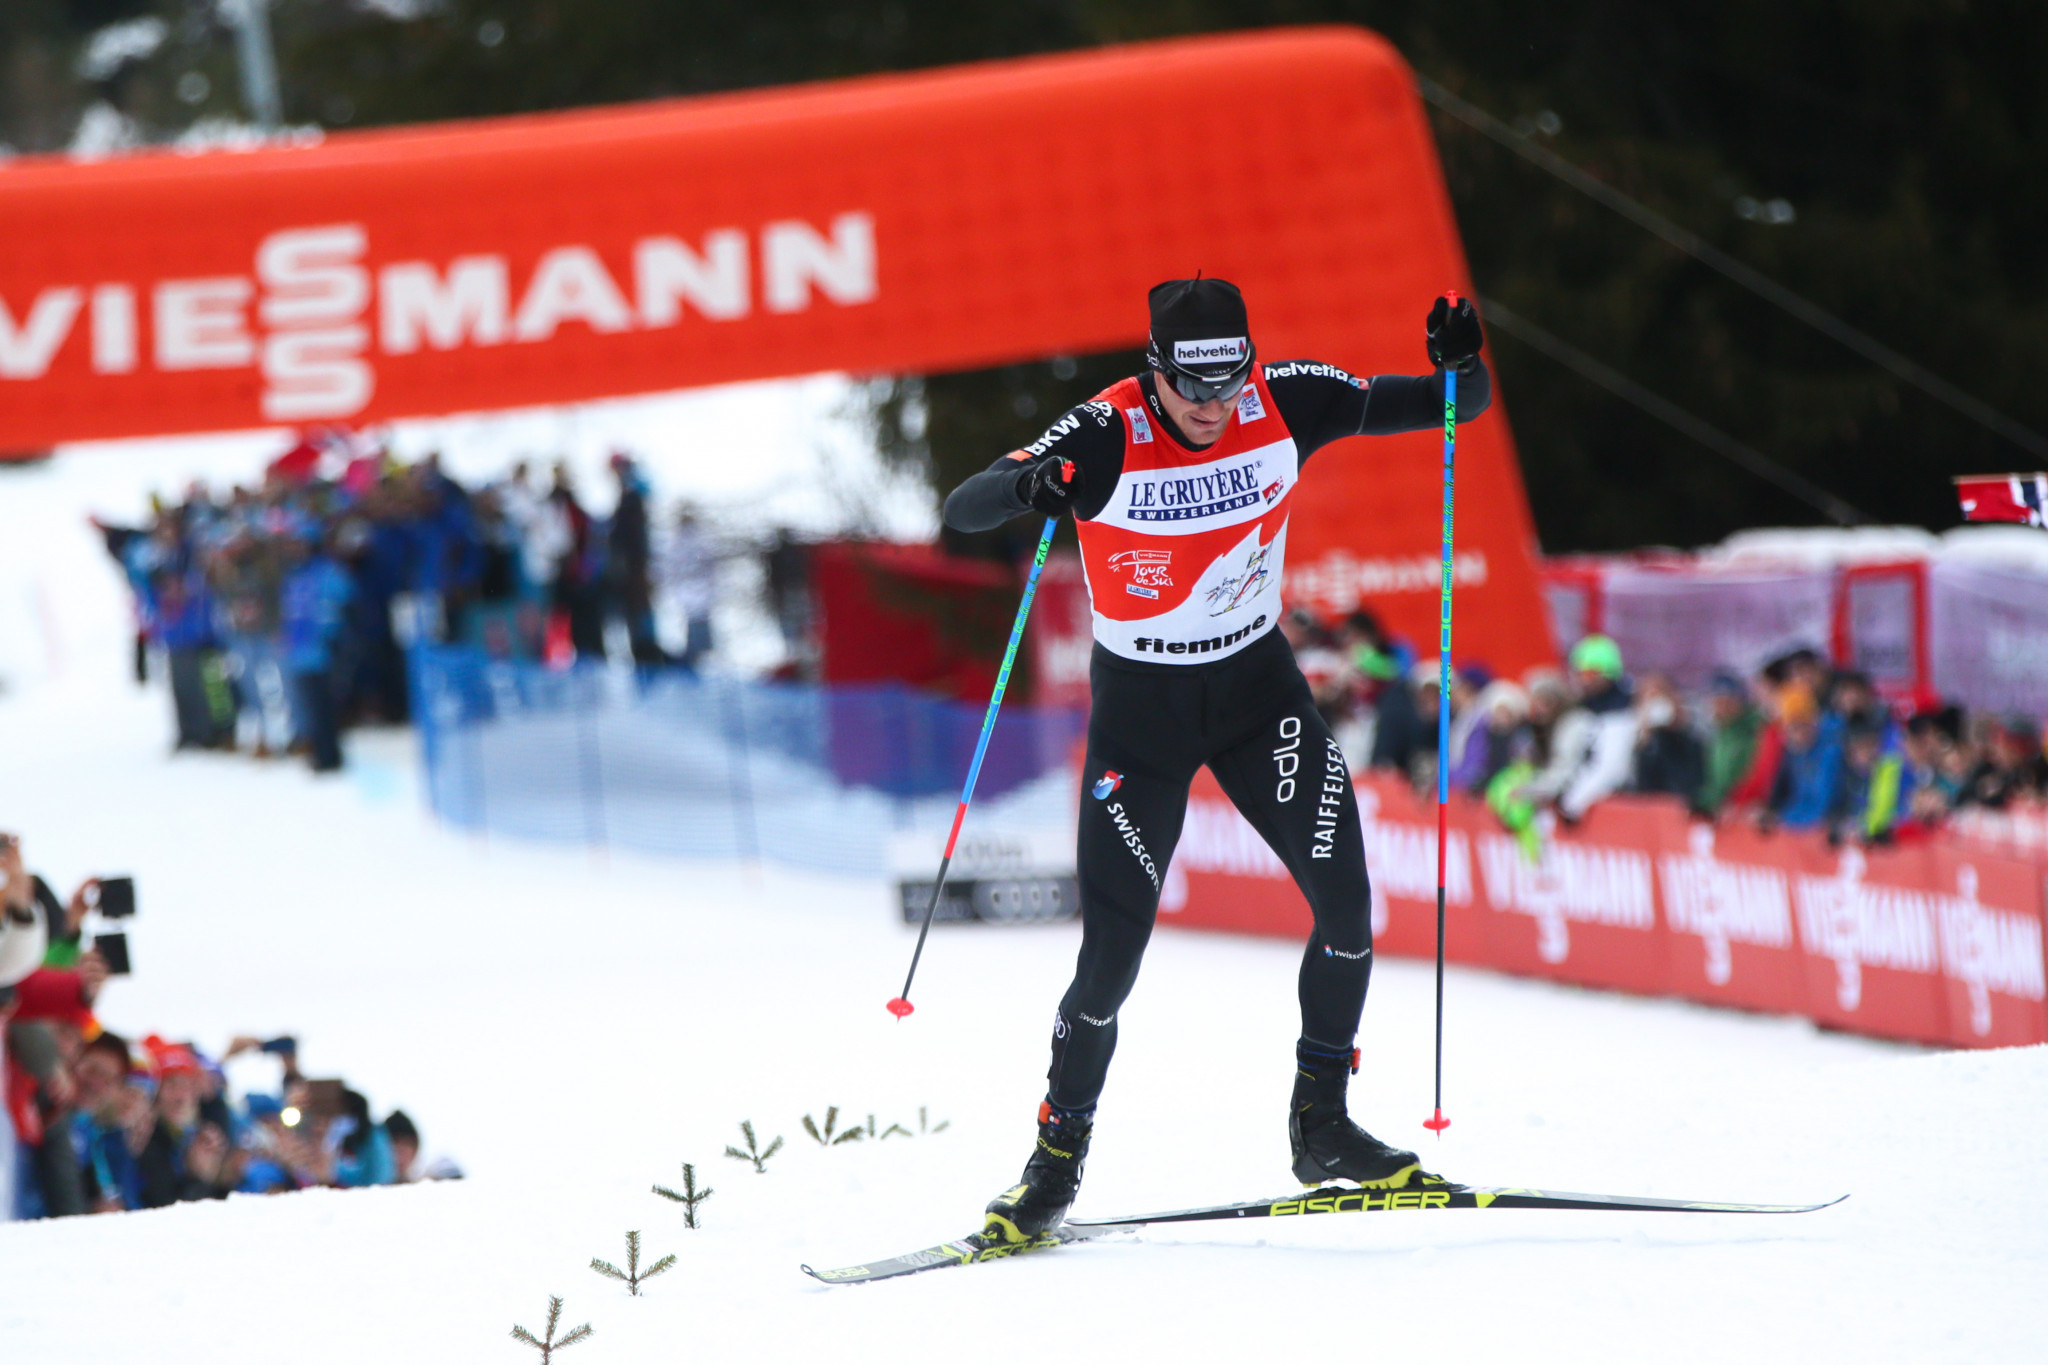 Switzerland's Dario Cologna will be among the favourites for cross-country glory at Pyeongchang 2018 ©Getty Images